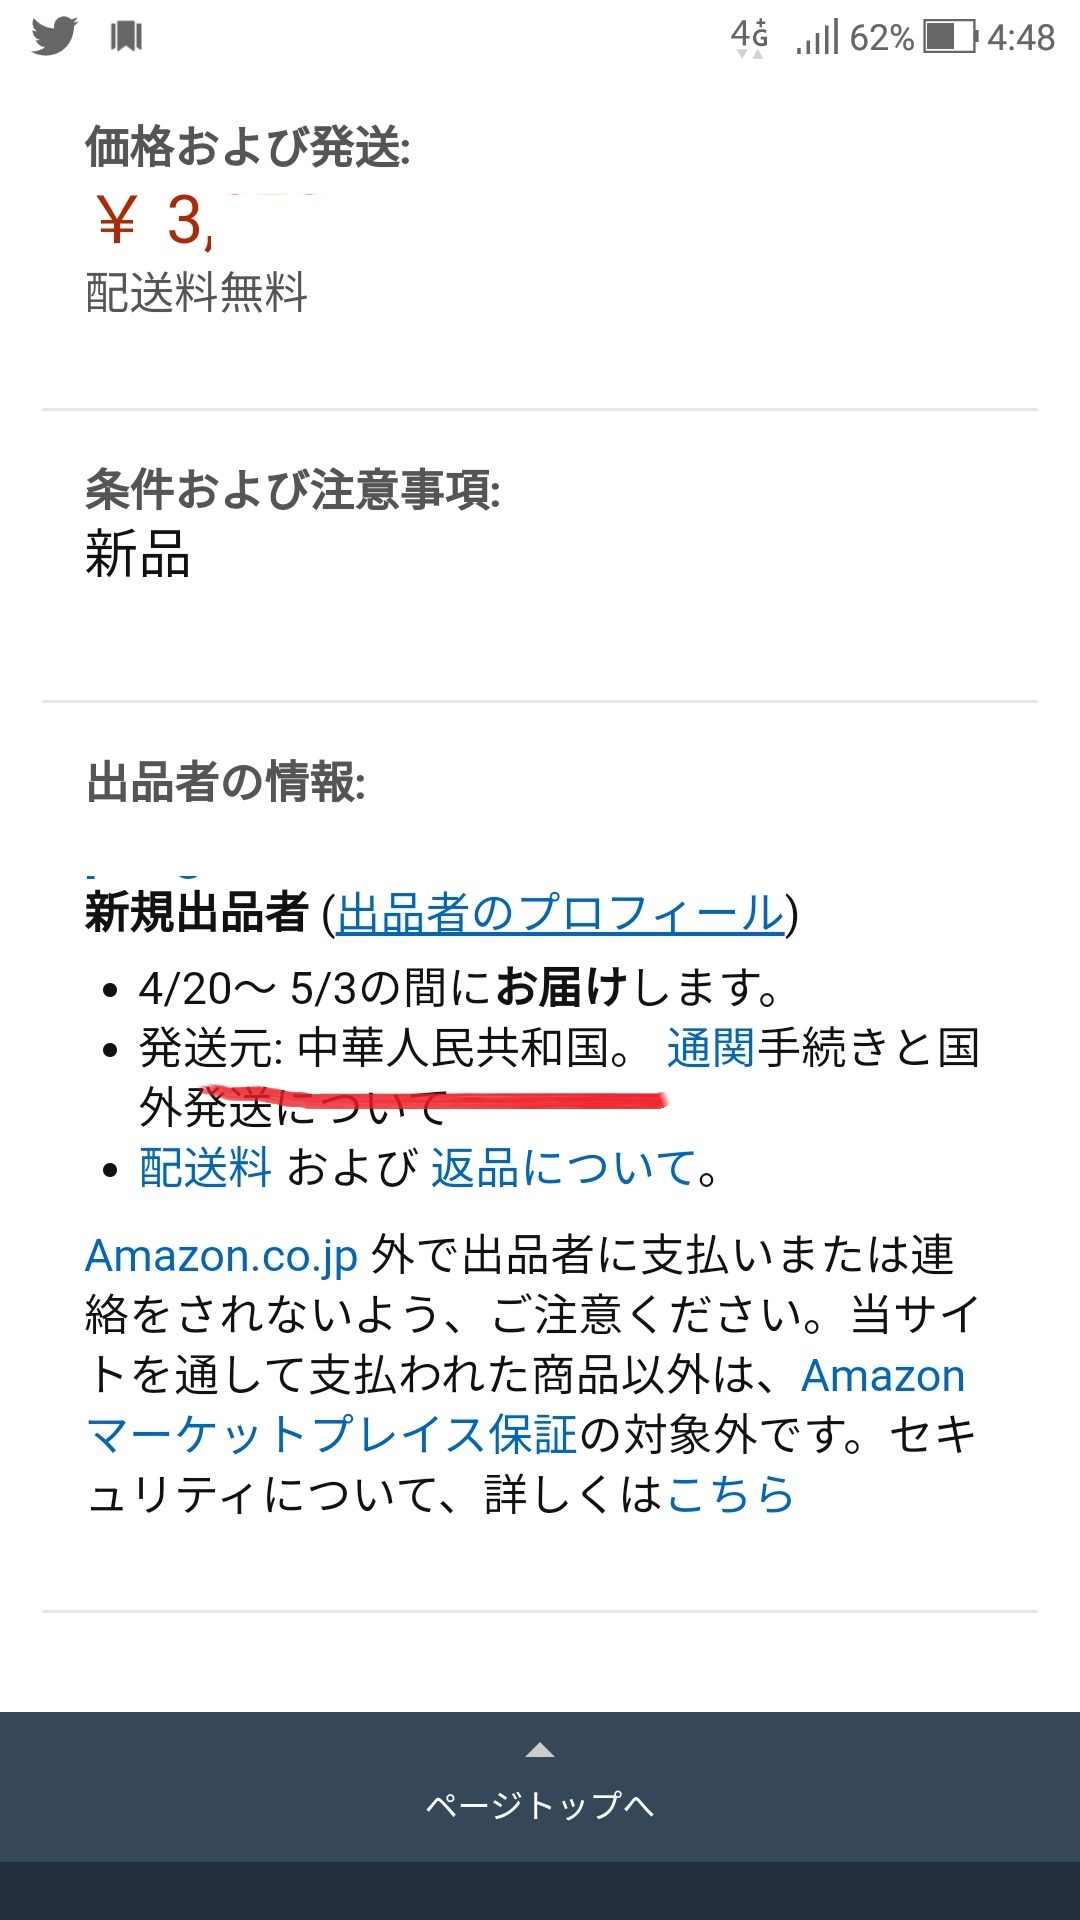 amazon_sumaho_china_look_1.jpg